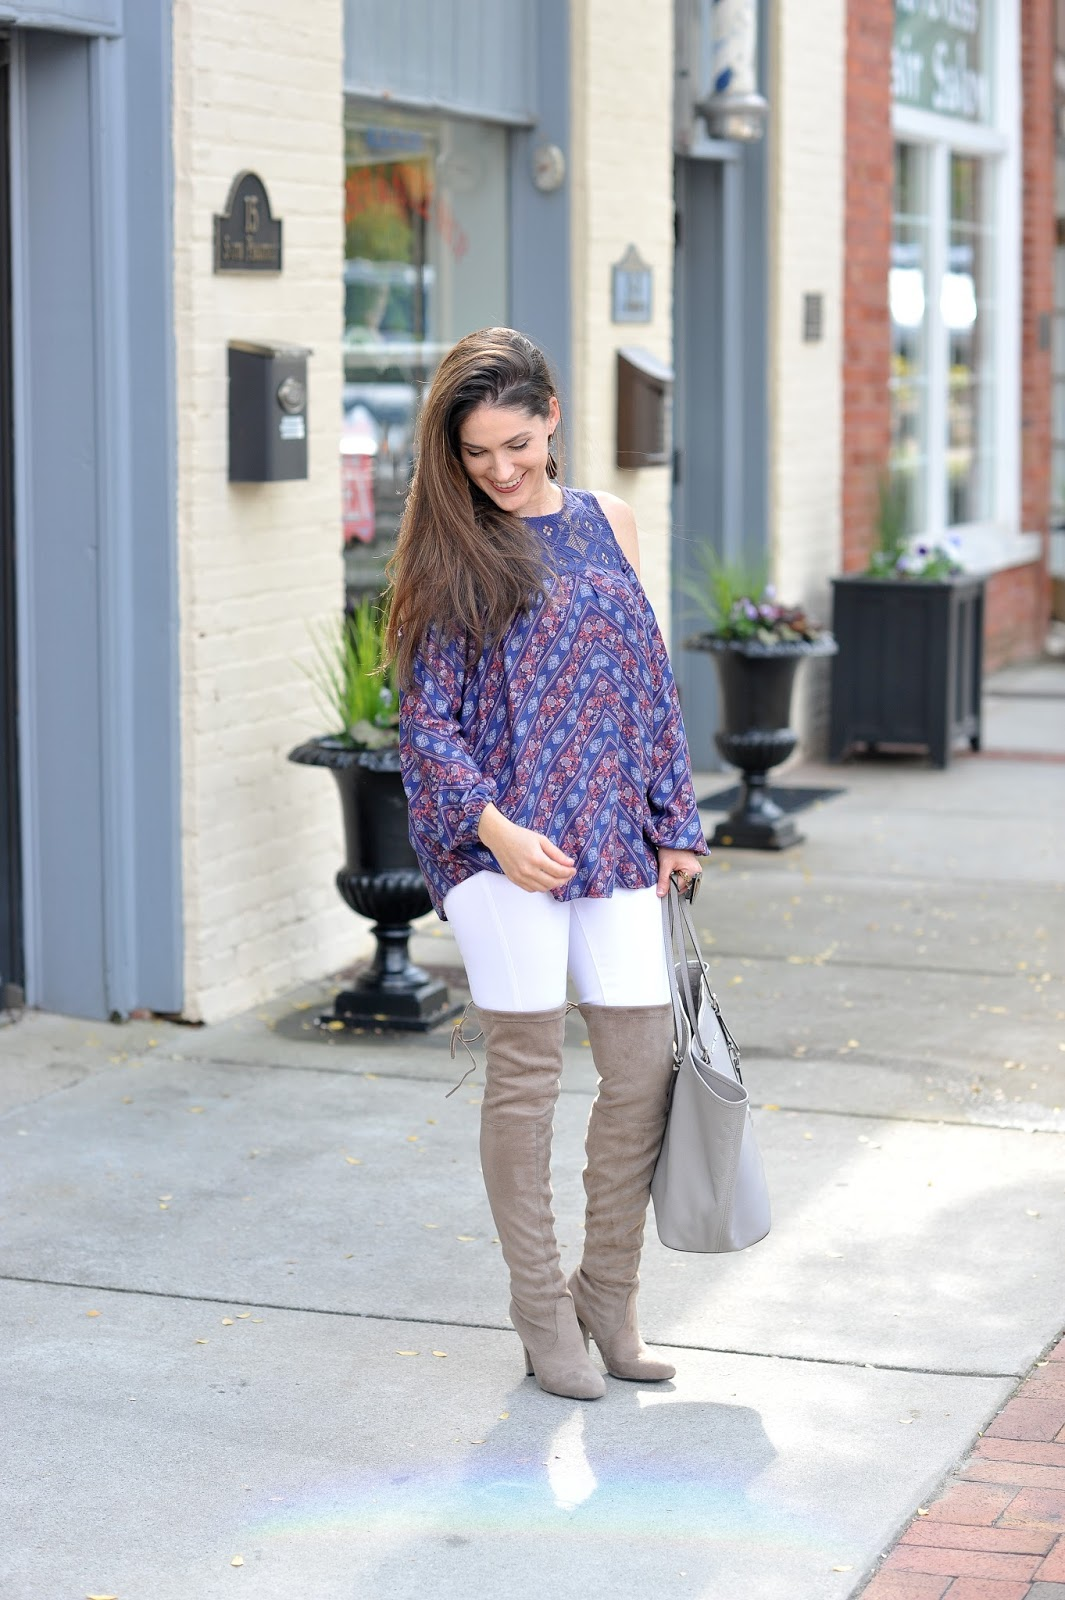 Cold Shoulder Top & Micheal Kors Tote - Erica Valentin Style Blogger